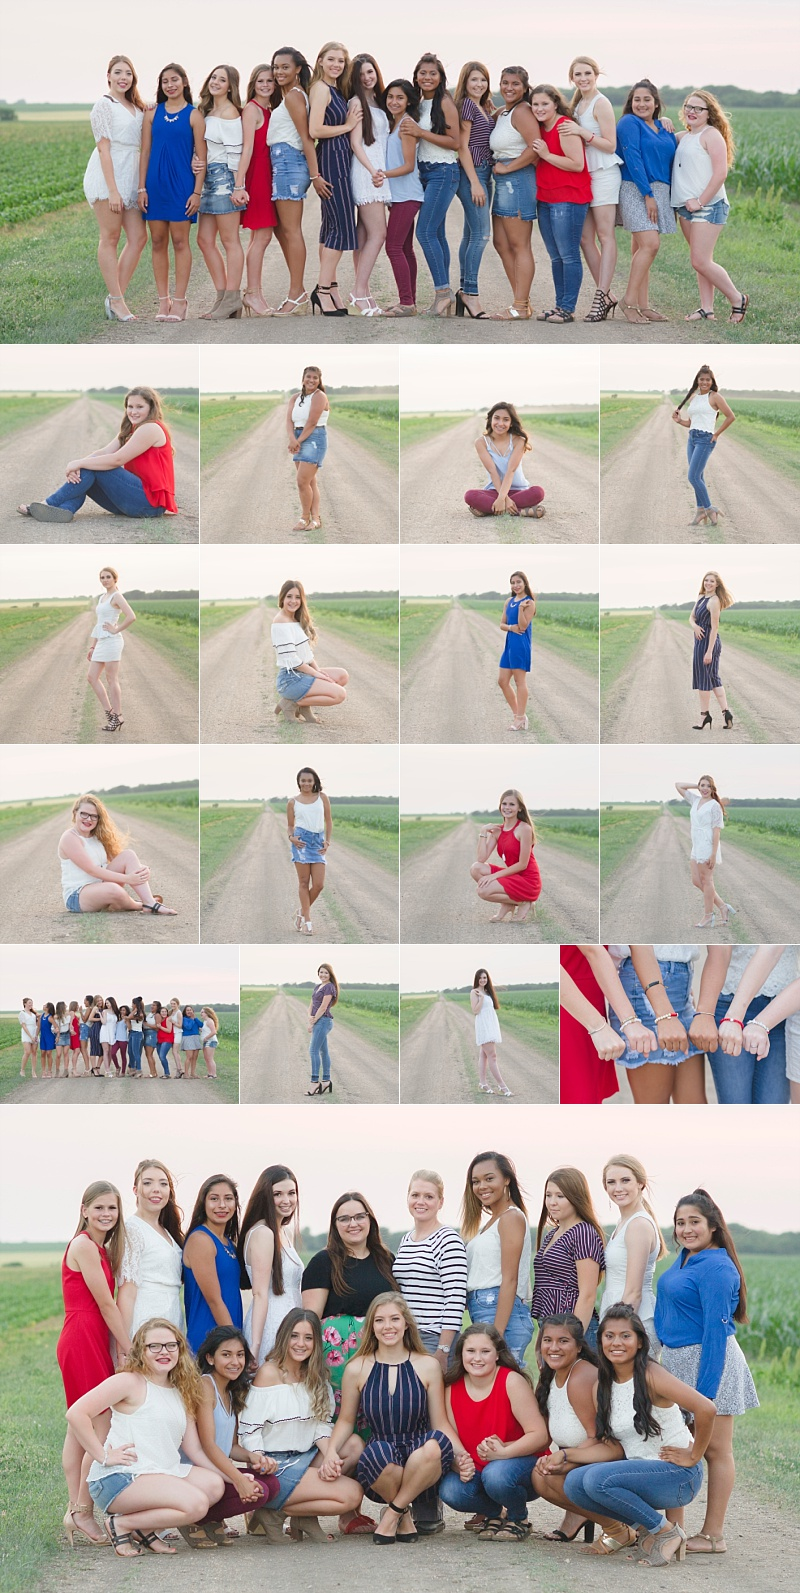 crete-high-school-cheer-cheerleaders-dirt-road-photography-group-session-girls-photographer-crete-nebraska-farm-grass-sunset-red-white-blue-cheer-squad-high-school-seniors-juniors-freshman-sophmores-cheerleading-stunts